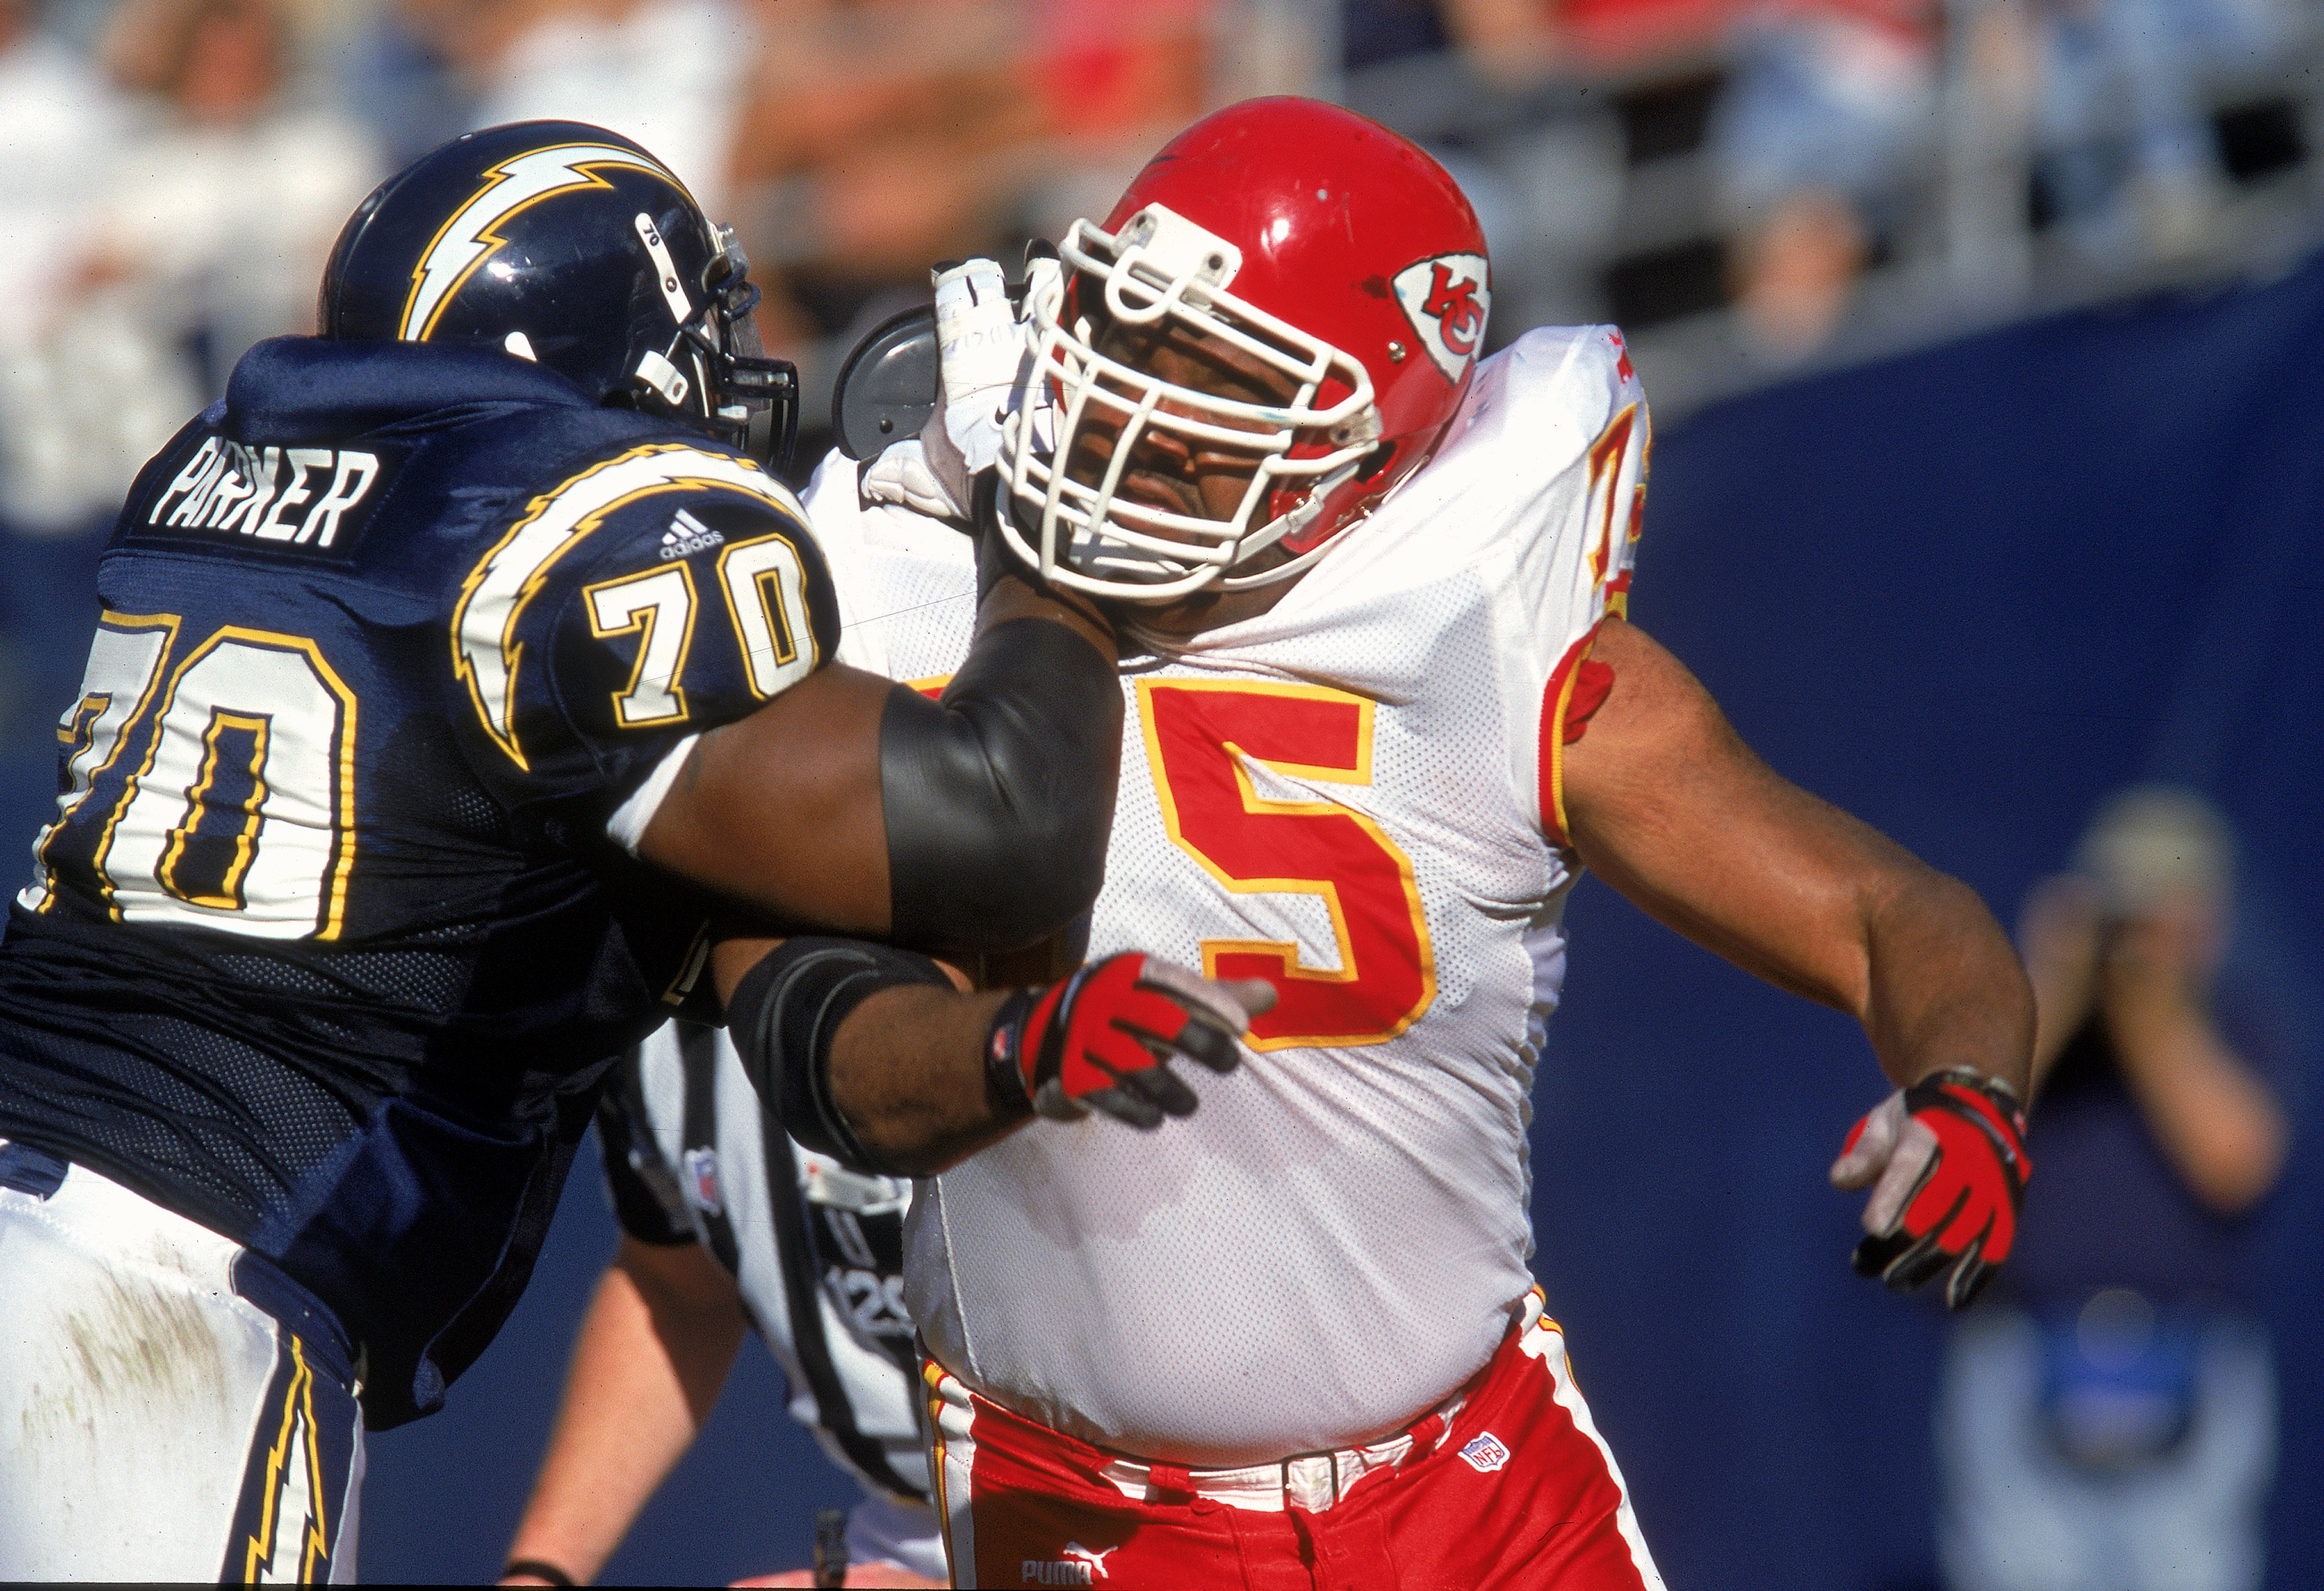 26 Nov 2000: Chester McGlockton #75 of the Kansas City Chiefs is blocked by Vaughn Parker #70 of the San Diego Chargers at the Qualcomm Stadium in San Diego, California. The Chargers defeated the Chiefs 17-16.Mandatory Credit: Stephen Dunn  /Allsport